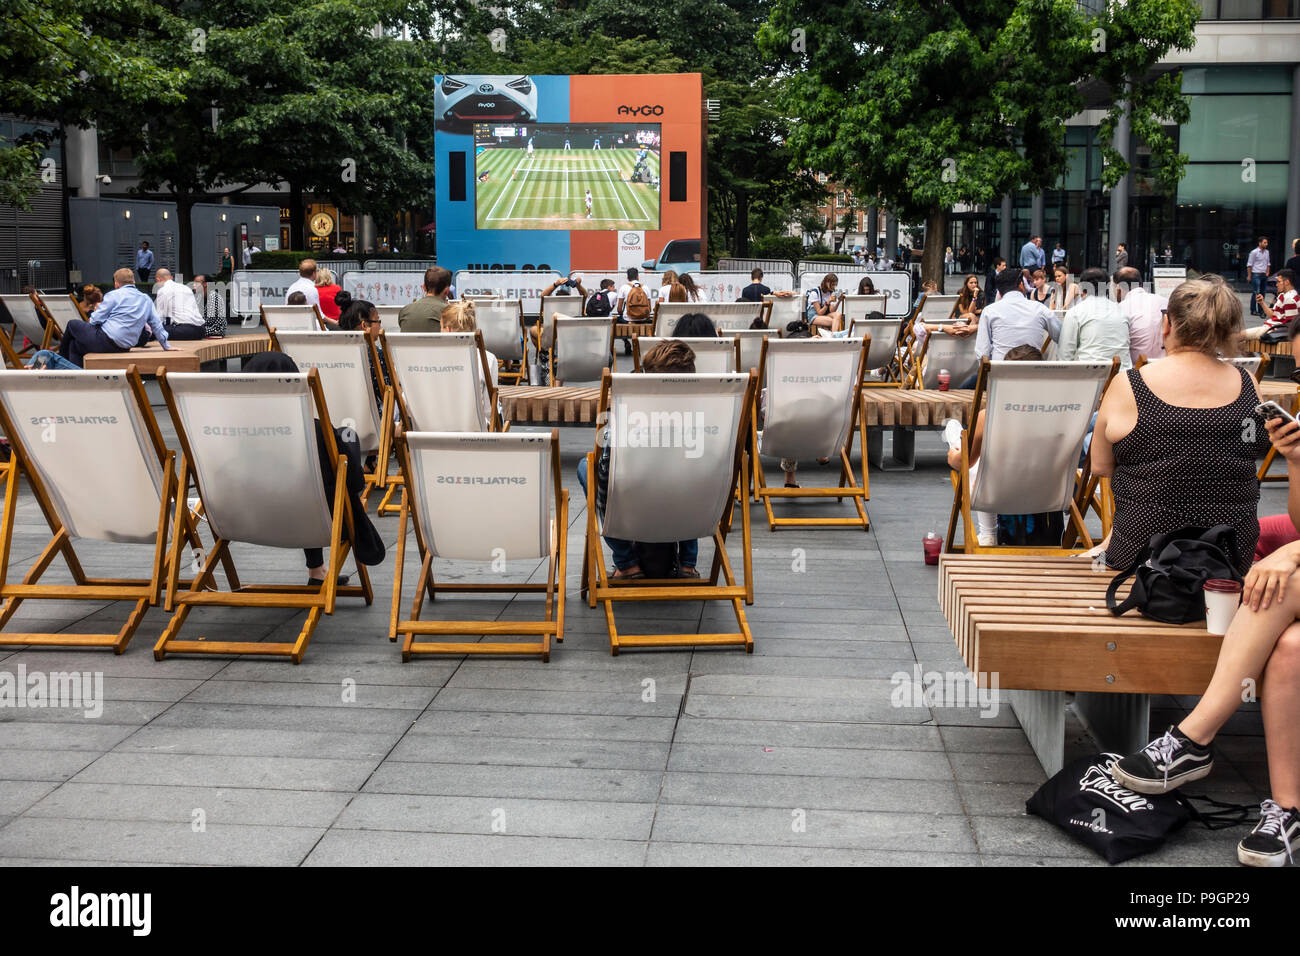 People relaxing, chatting and watching tennis from Wimbledon in Bishops Square, a privately-owned public space in Spitalfields, London. - Stock Image